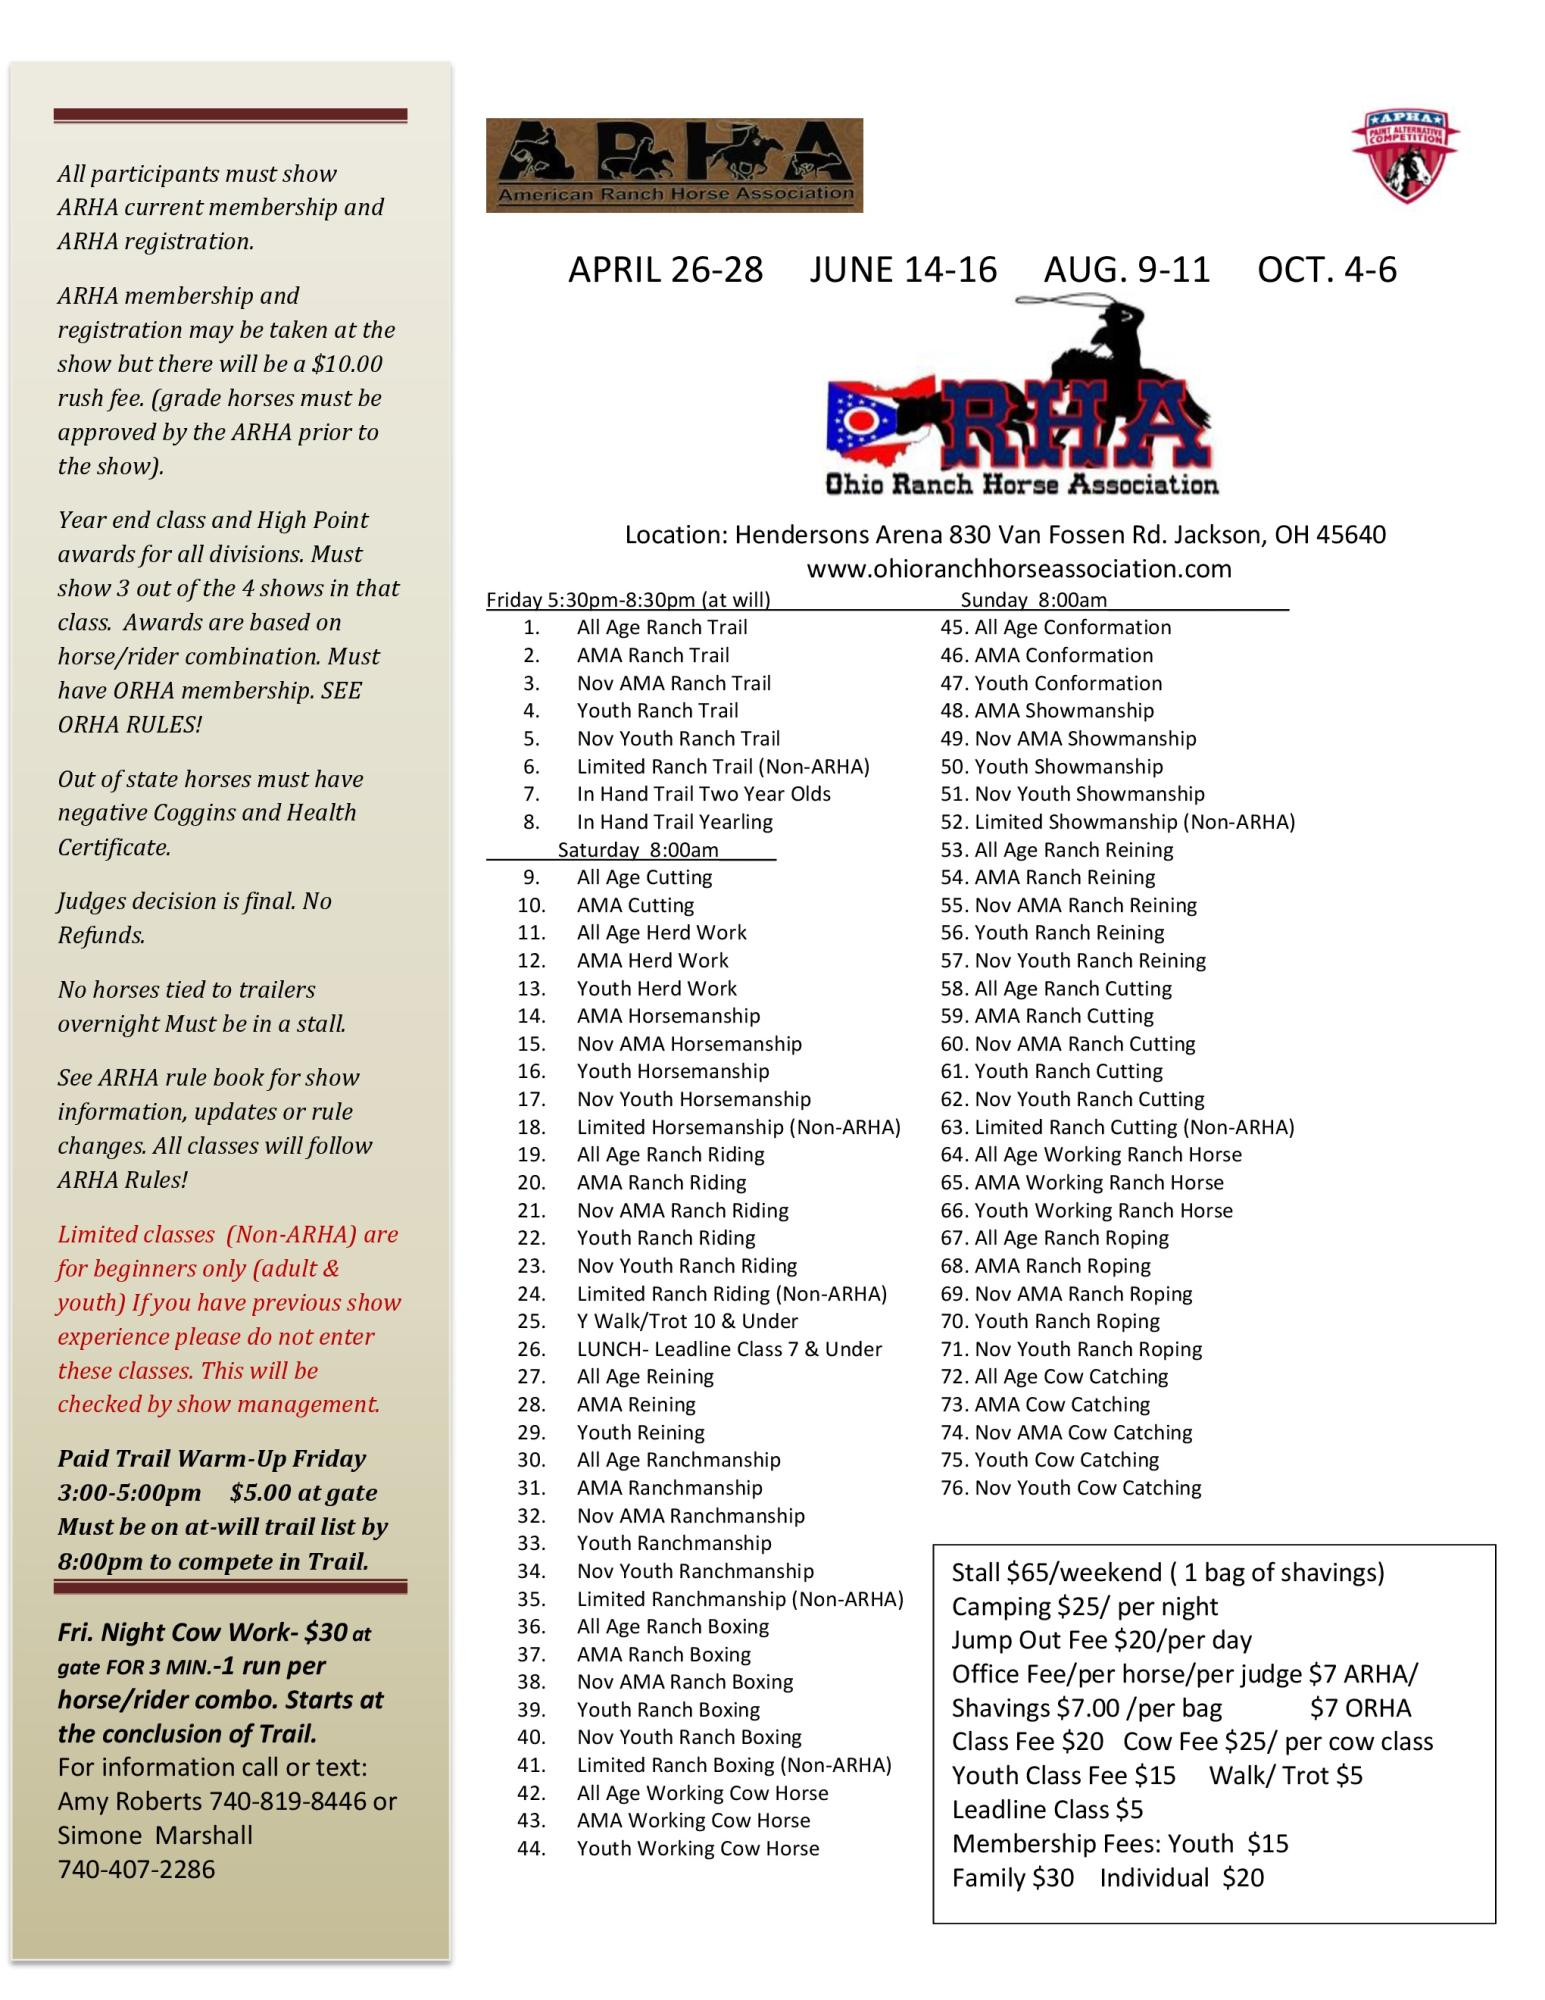 All Limited Exhibitors Will Be Verified By Show Management You May In For 2 Calendar Years Then Are Required To Move Up